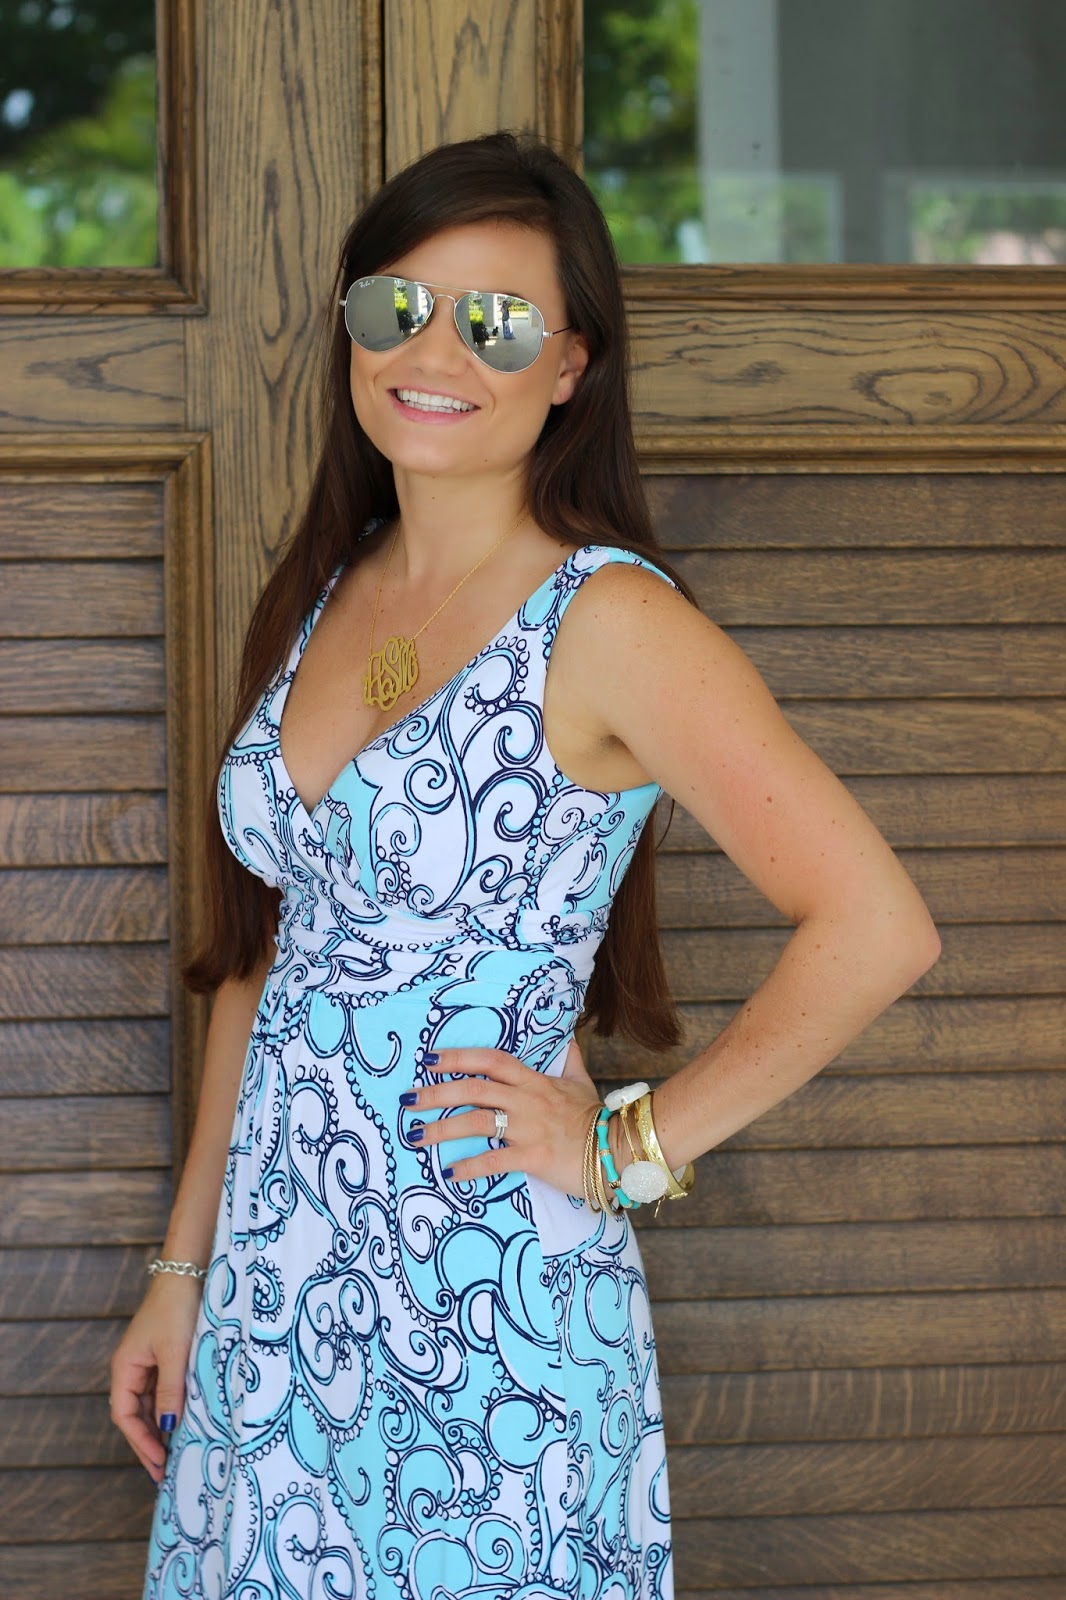 The Neapolitan A Naples Florida Based Life And Style Blog By Alina